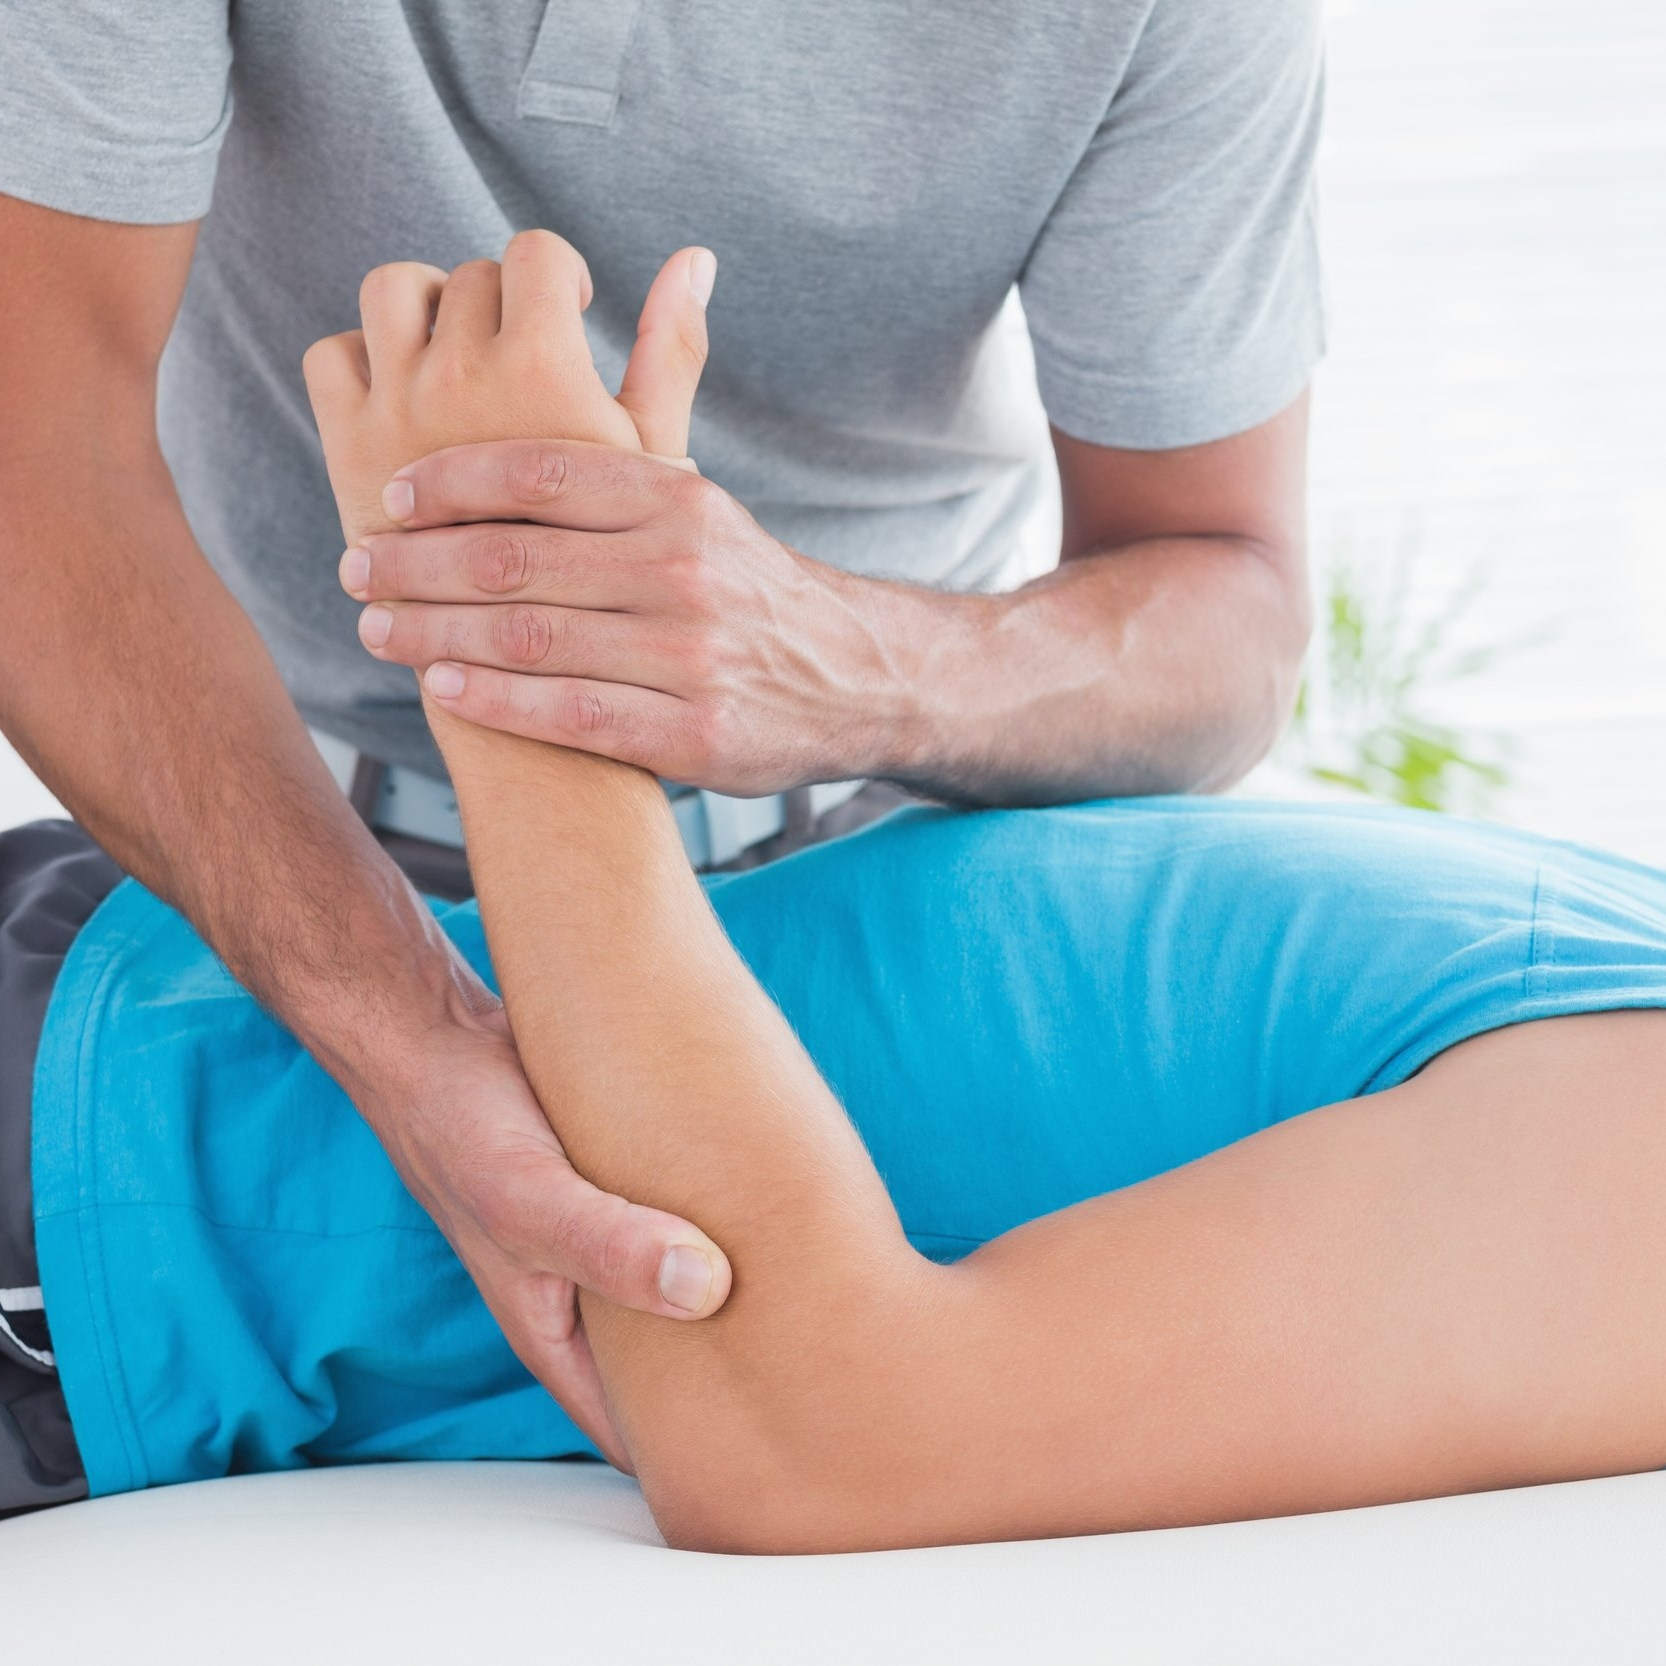 Arm Injuries | Physical Therapy